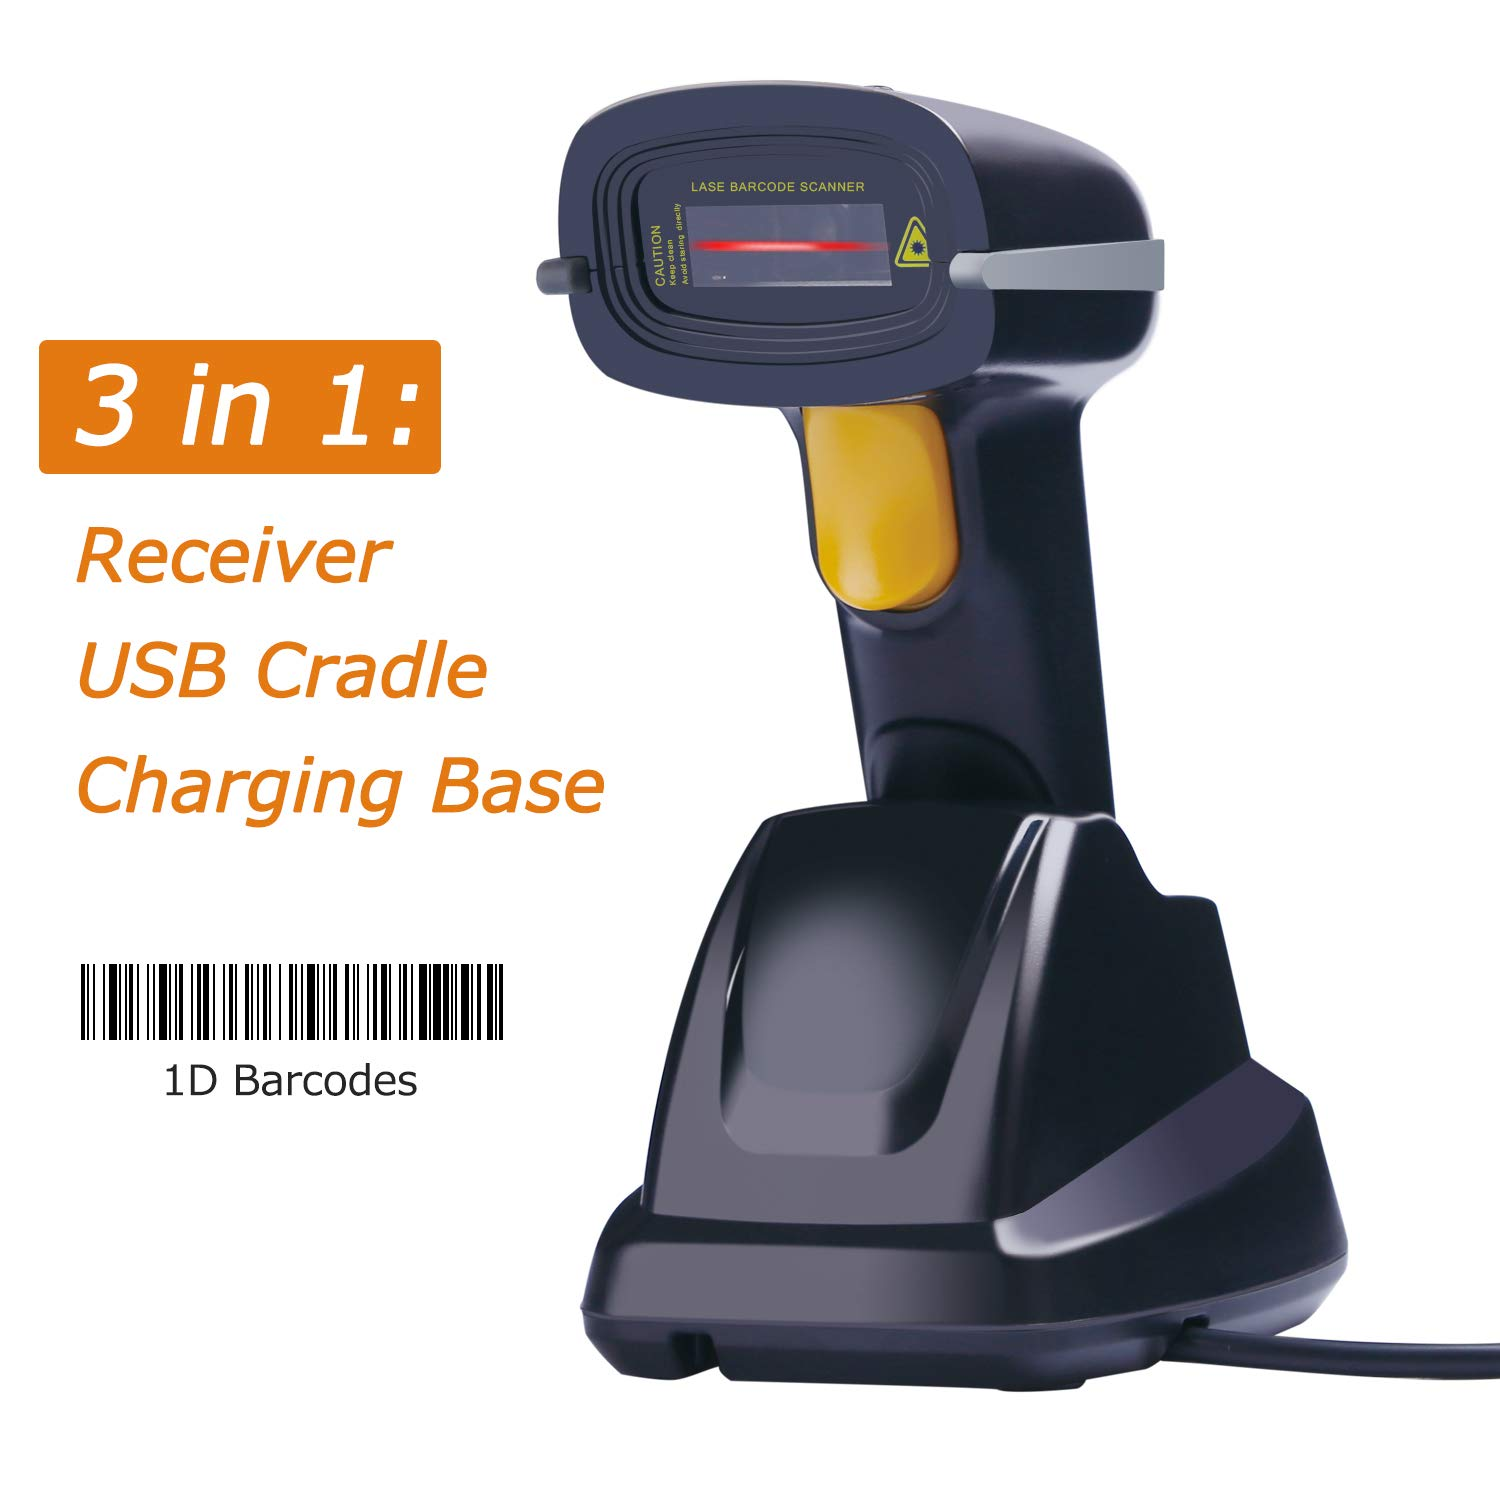 Tera Barcode Scanner Wireless with Charging Cradle 2.4G Barcode Reader Handheld 1D Barcode Scanning 100m Transfer Range without Barrier 3-in-1(USB Cradle, Charging Base, Receiver) EVHK0005